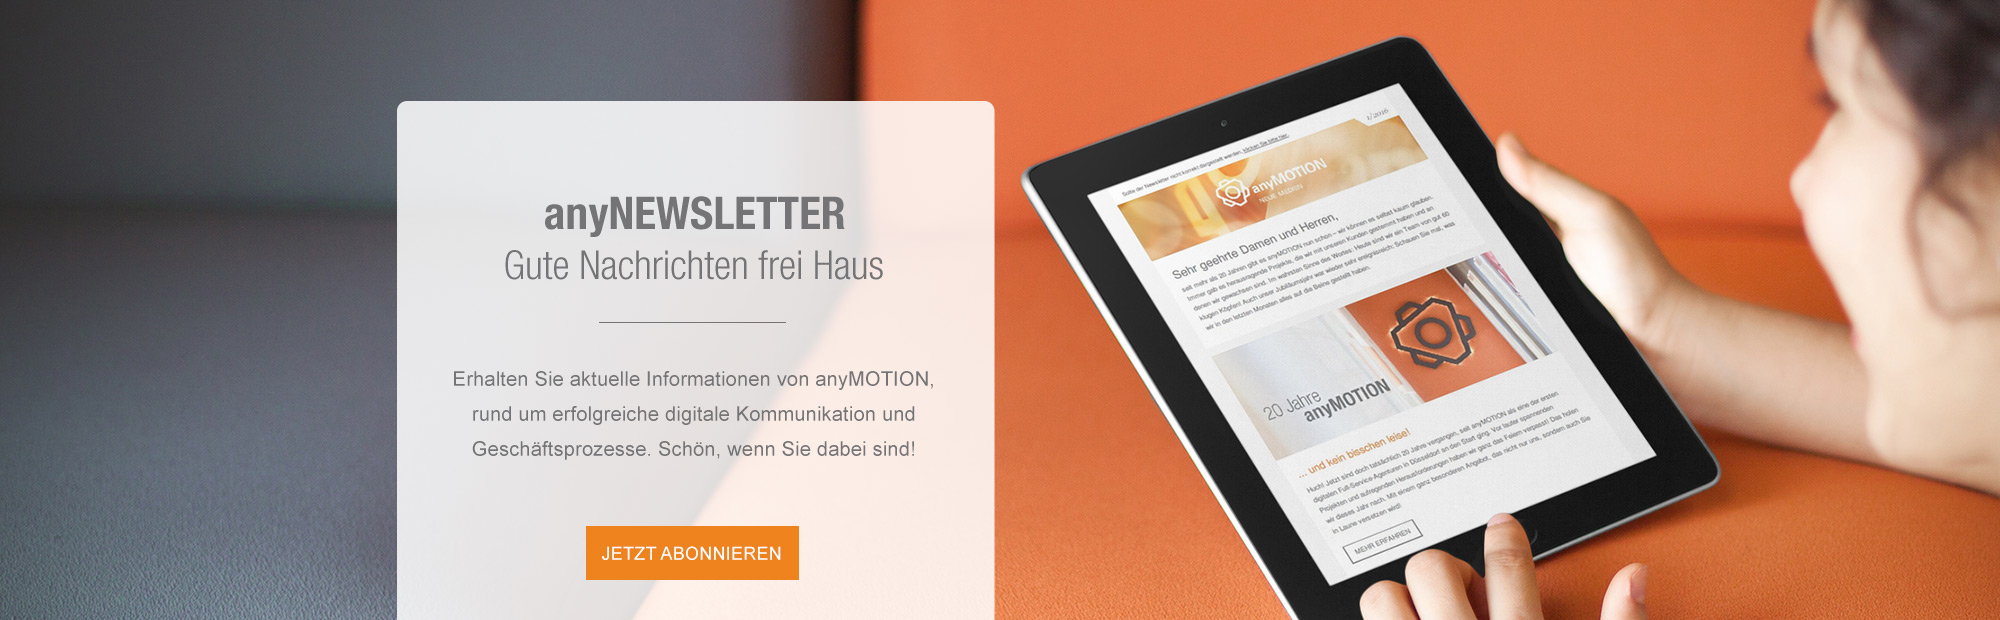 Newsletter von anyMOTION